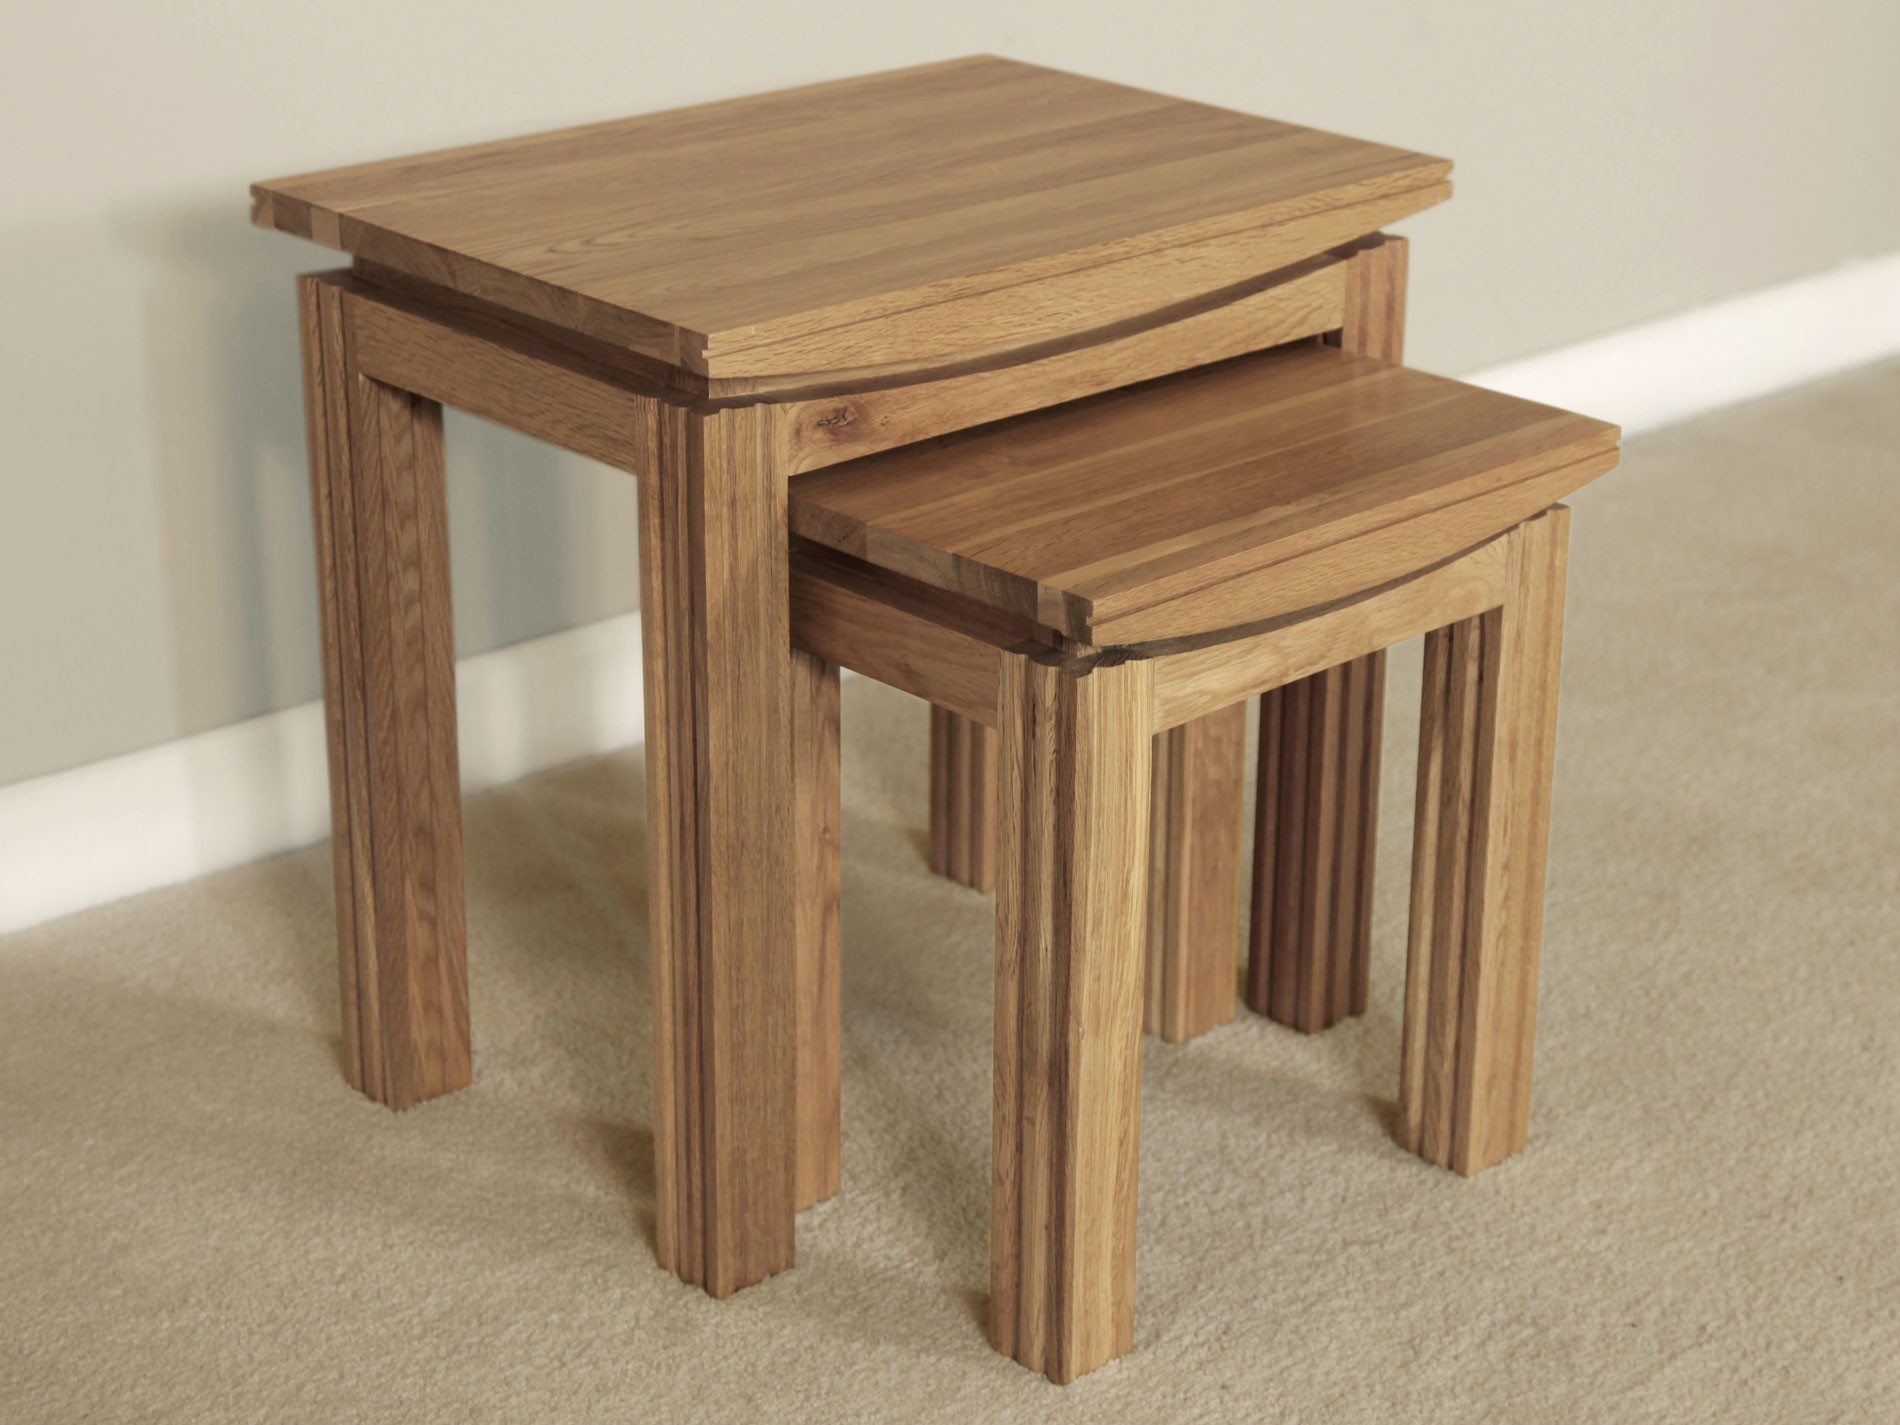 Wonderful image of Tokyo Natural Solid Oak Nest of 2 Tables with #442C20 color and 1900x1425 pixels